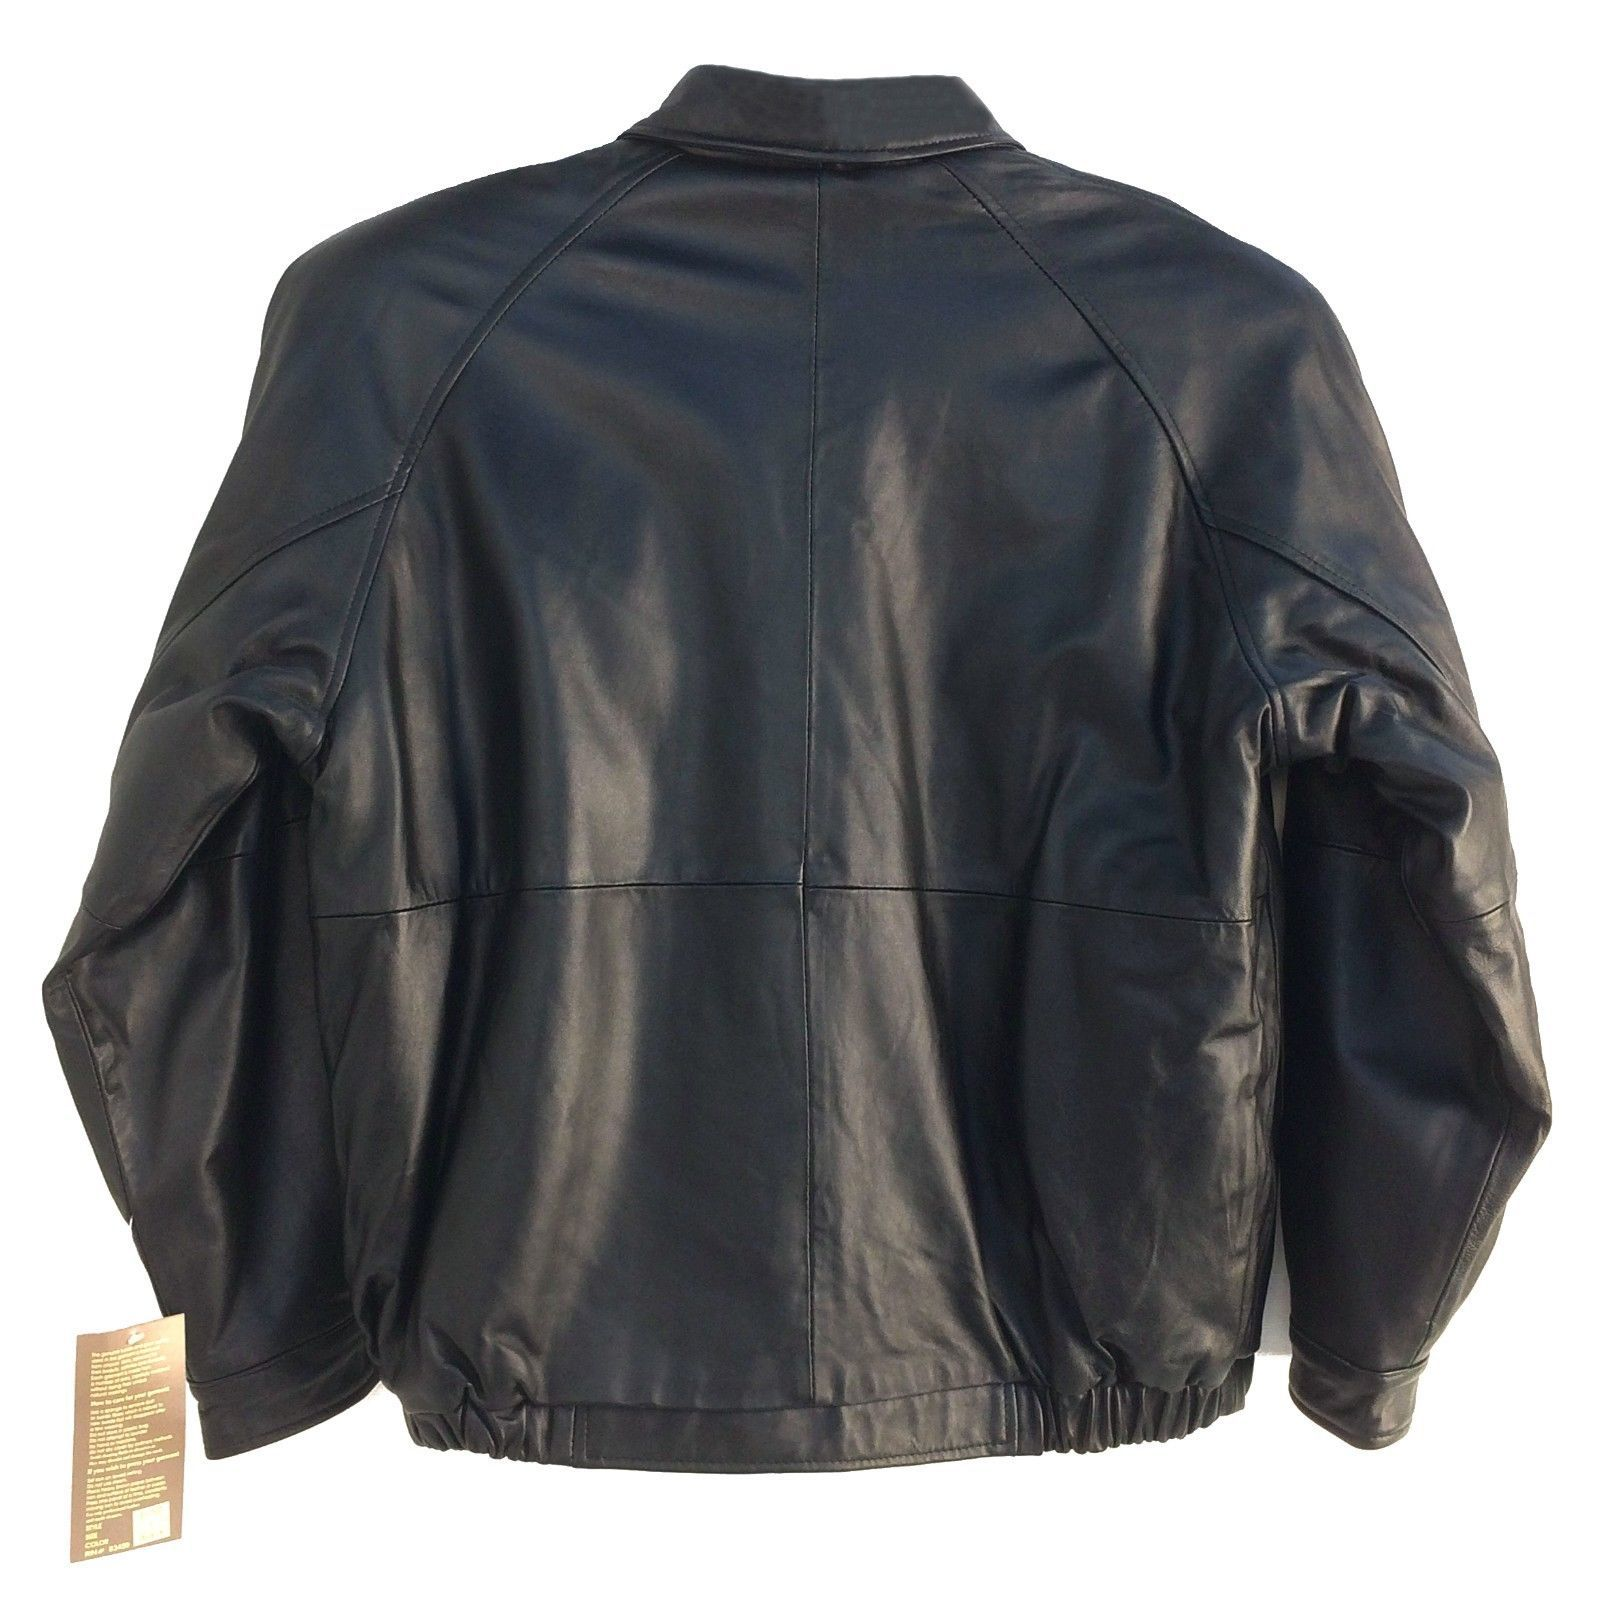 Assorted Brands ,Vintage, Men's Genuine Leather Bomber (Short) Jacket, Group-2 image 3